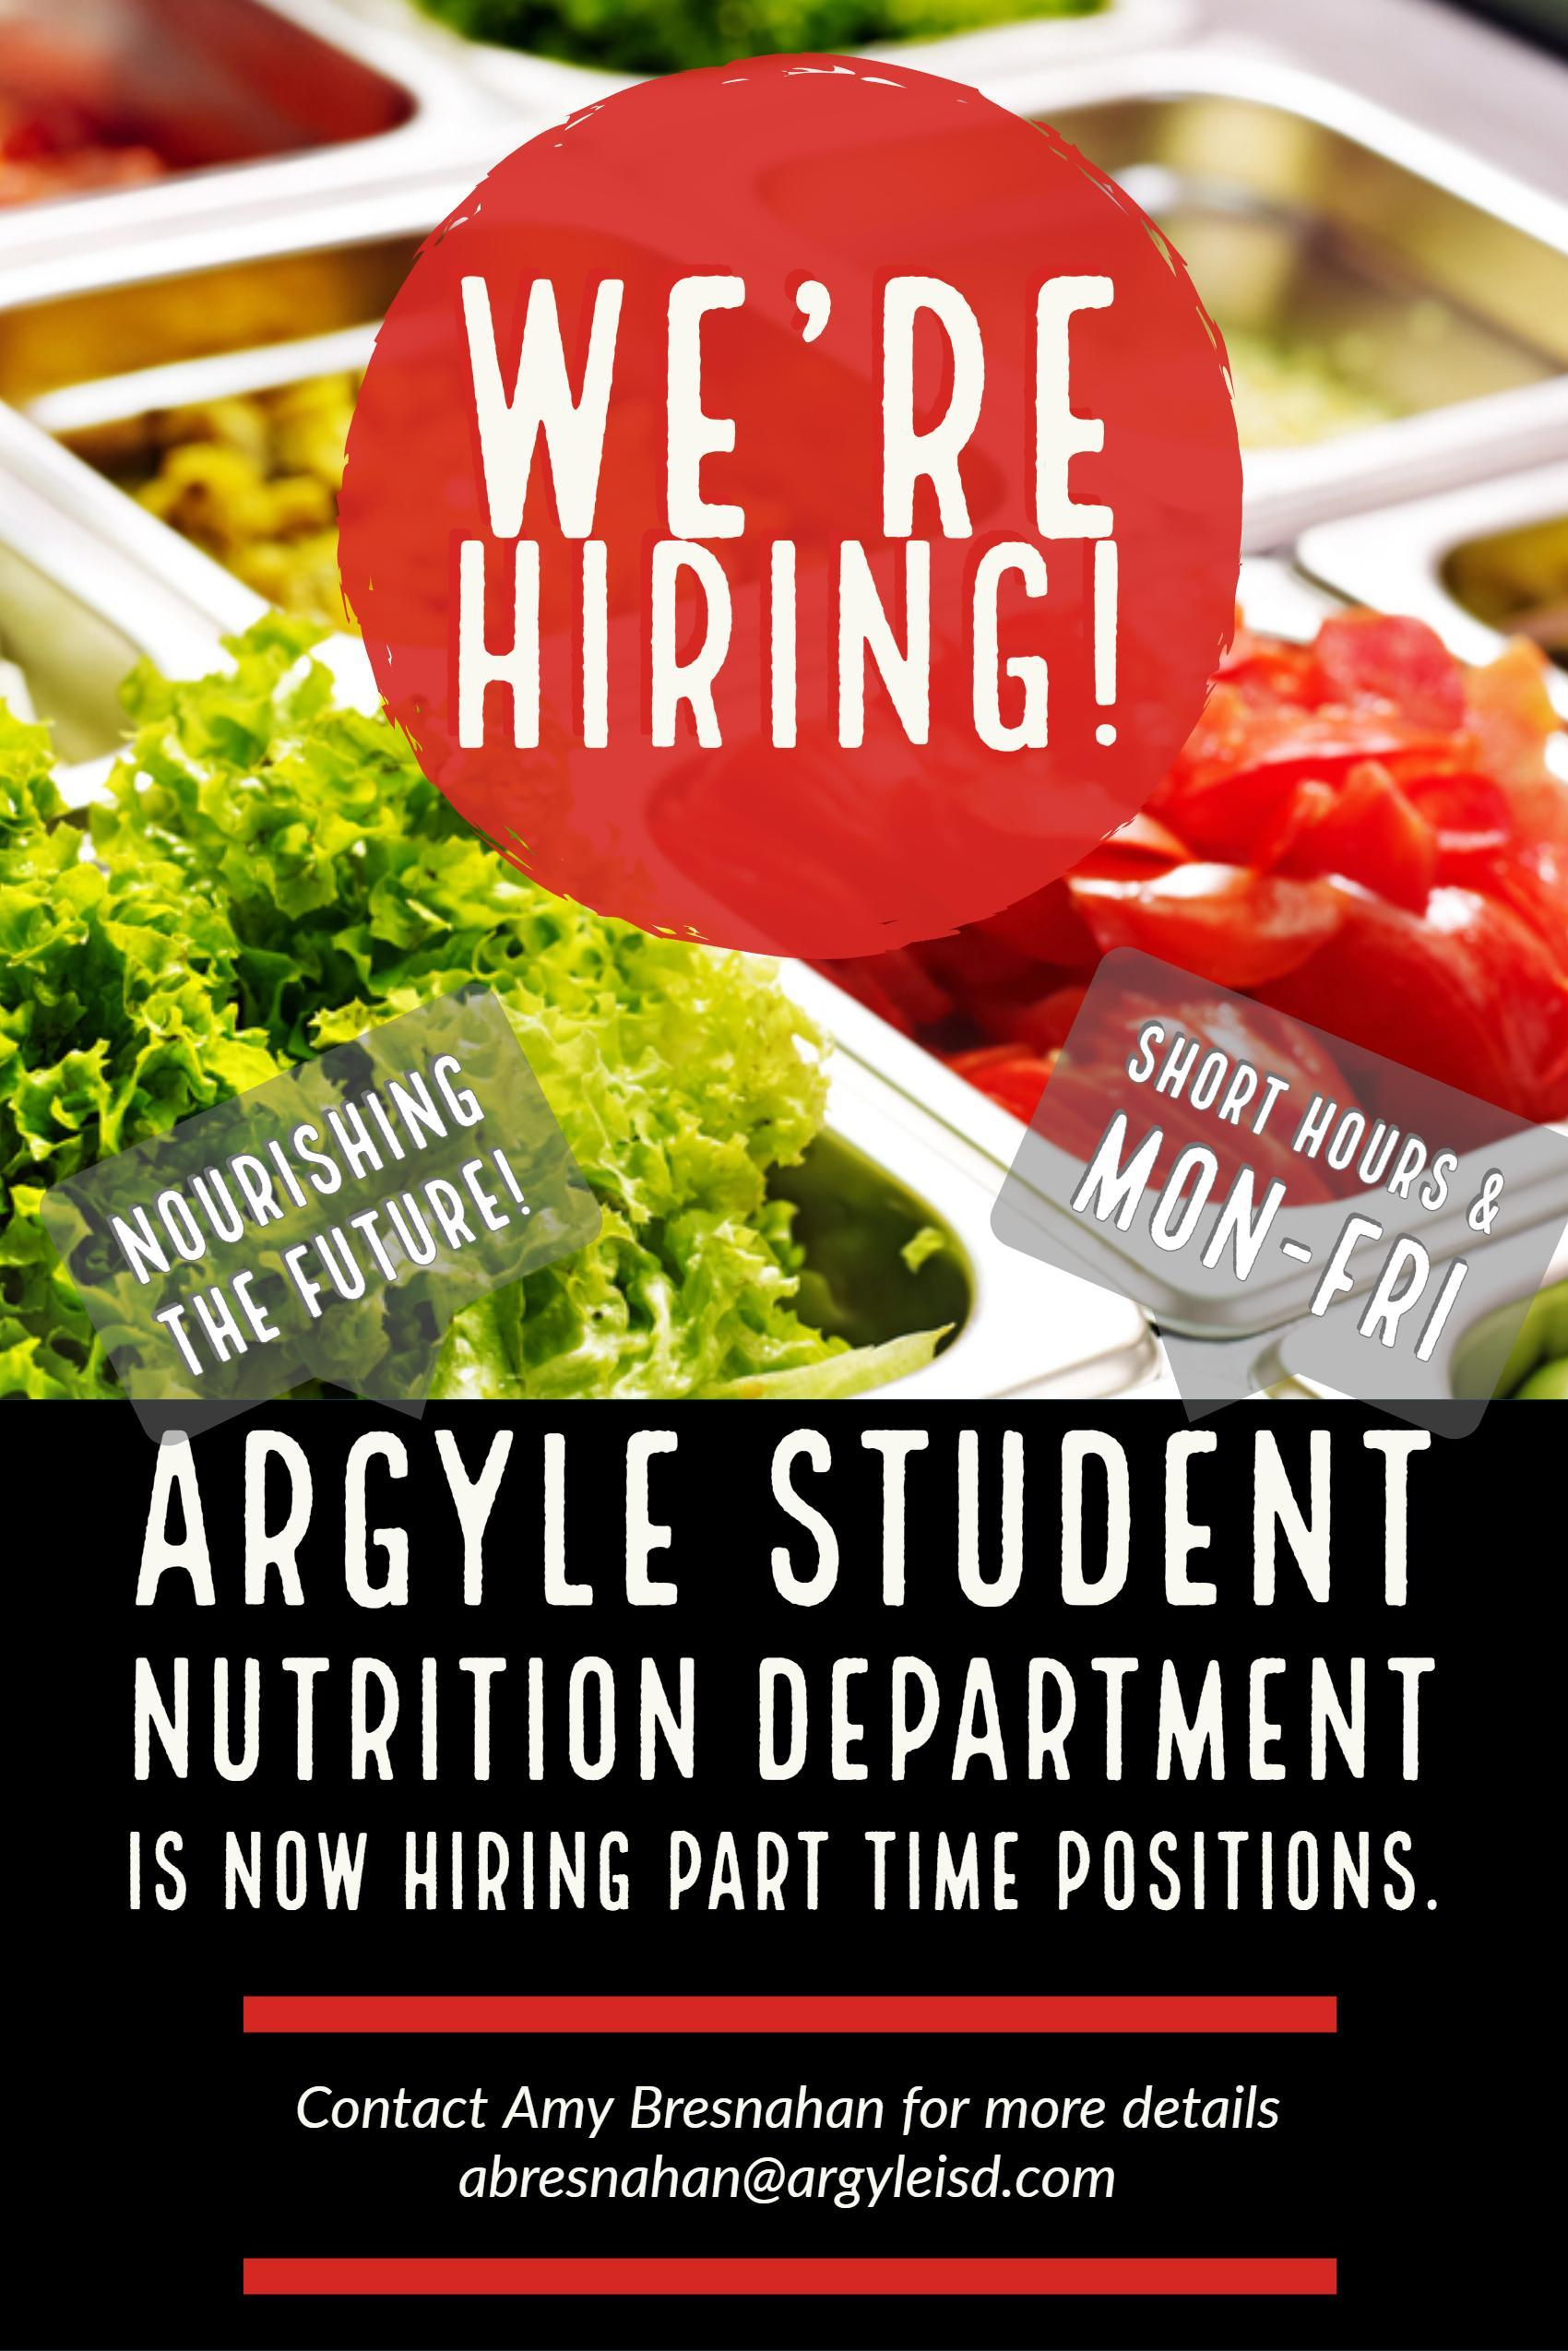 Hiring for part time positions